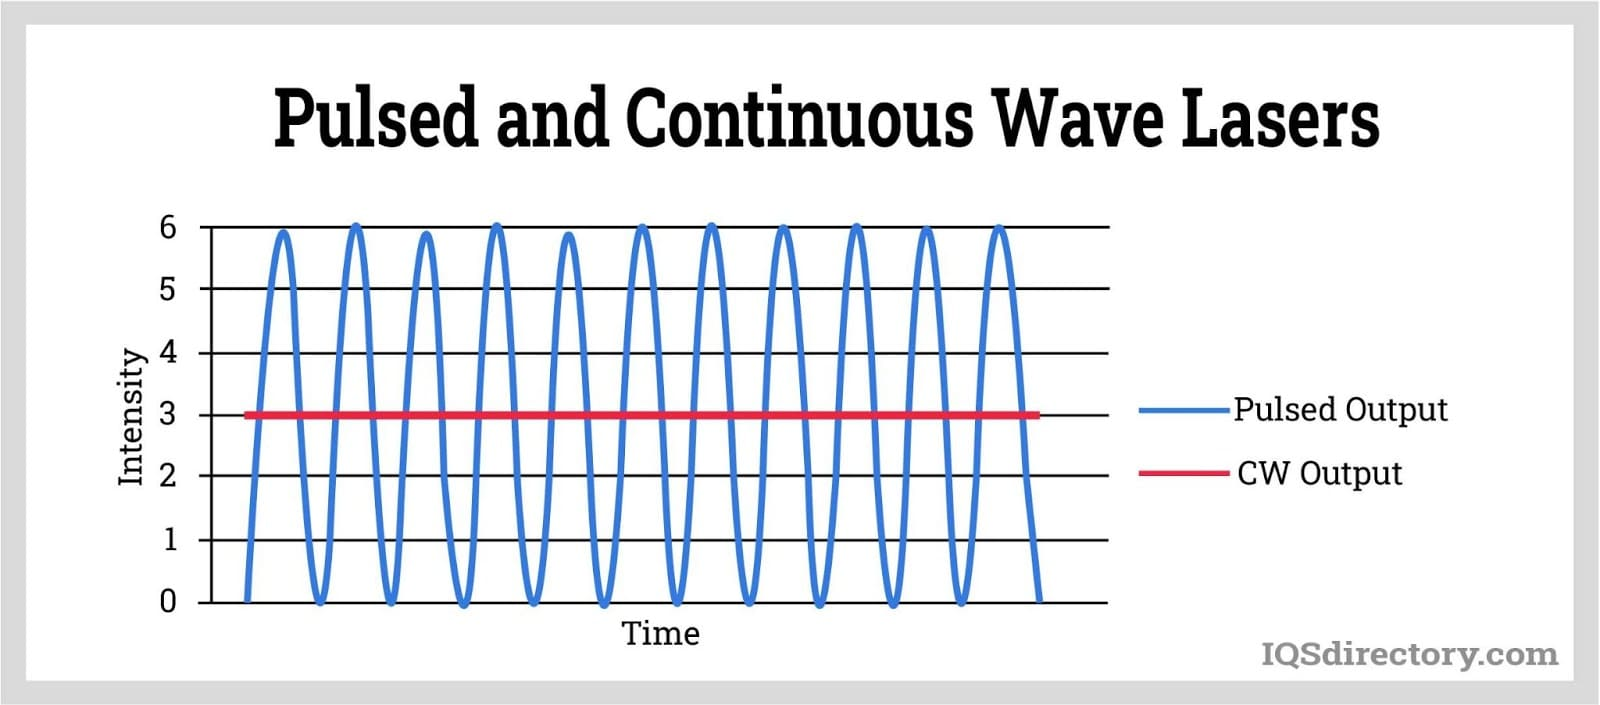 Pulsed and Continuous Wave Lasers